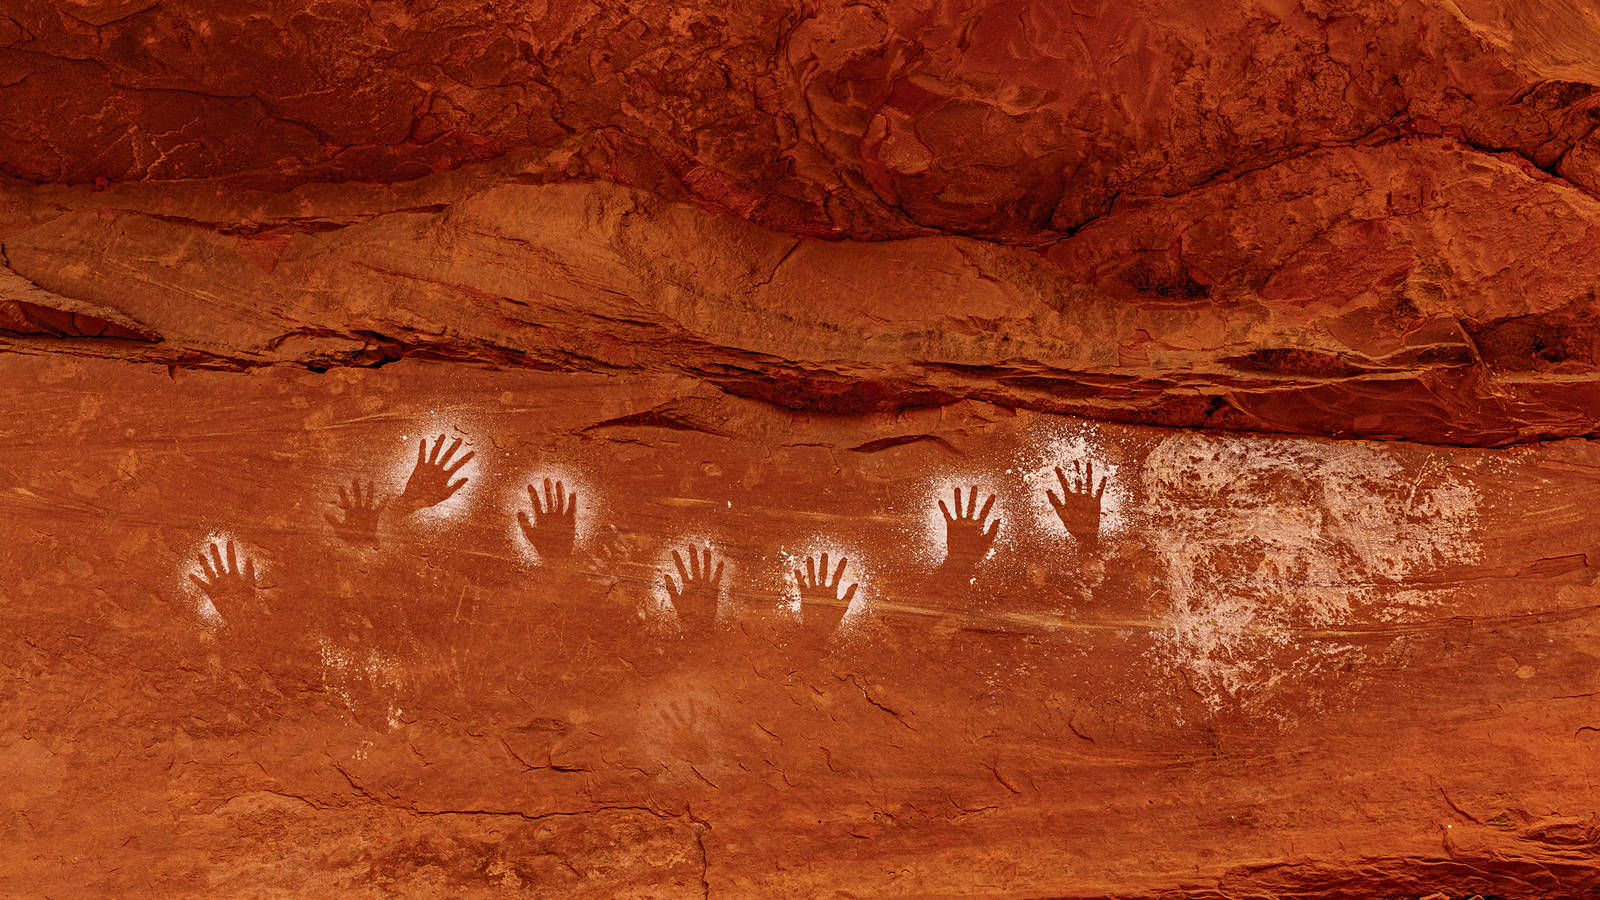 """<h3 style=""""text-align: center; padding: 50px;""""><span class=""""text-Intro-style"""">These painted outlines of human hands are in an area of Bears Ears that the Trump administration removed from the monument — illegally, according to NPCA. """"I love handprints because they're so personal,"""" Alvarez said. """"I think of them as self-portraits ... Even looking at them on the screen, I can't resist <br />holding my hand up to see how my hand compares."""" © STEPHEN ALVAREZ</span></h3>"""